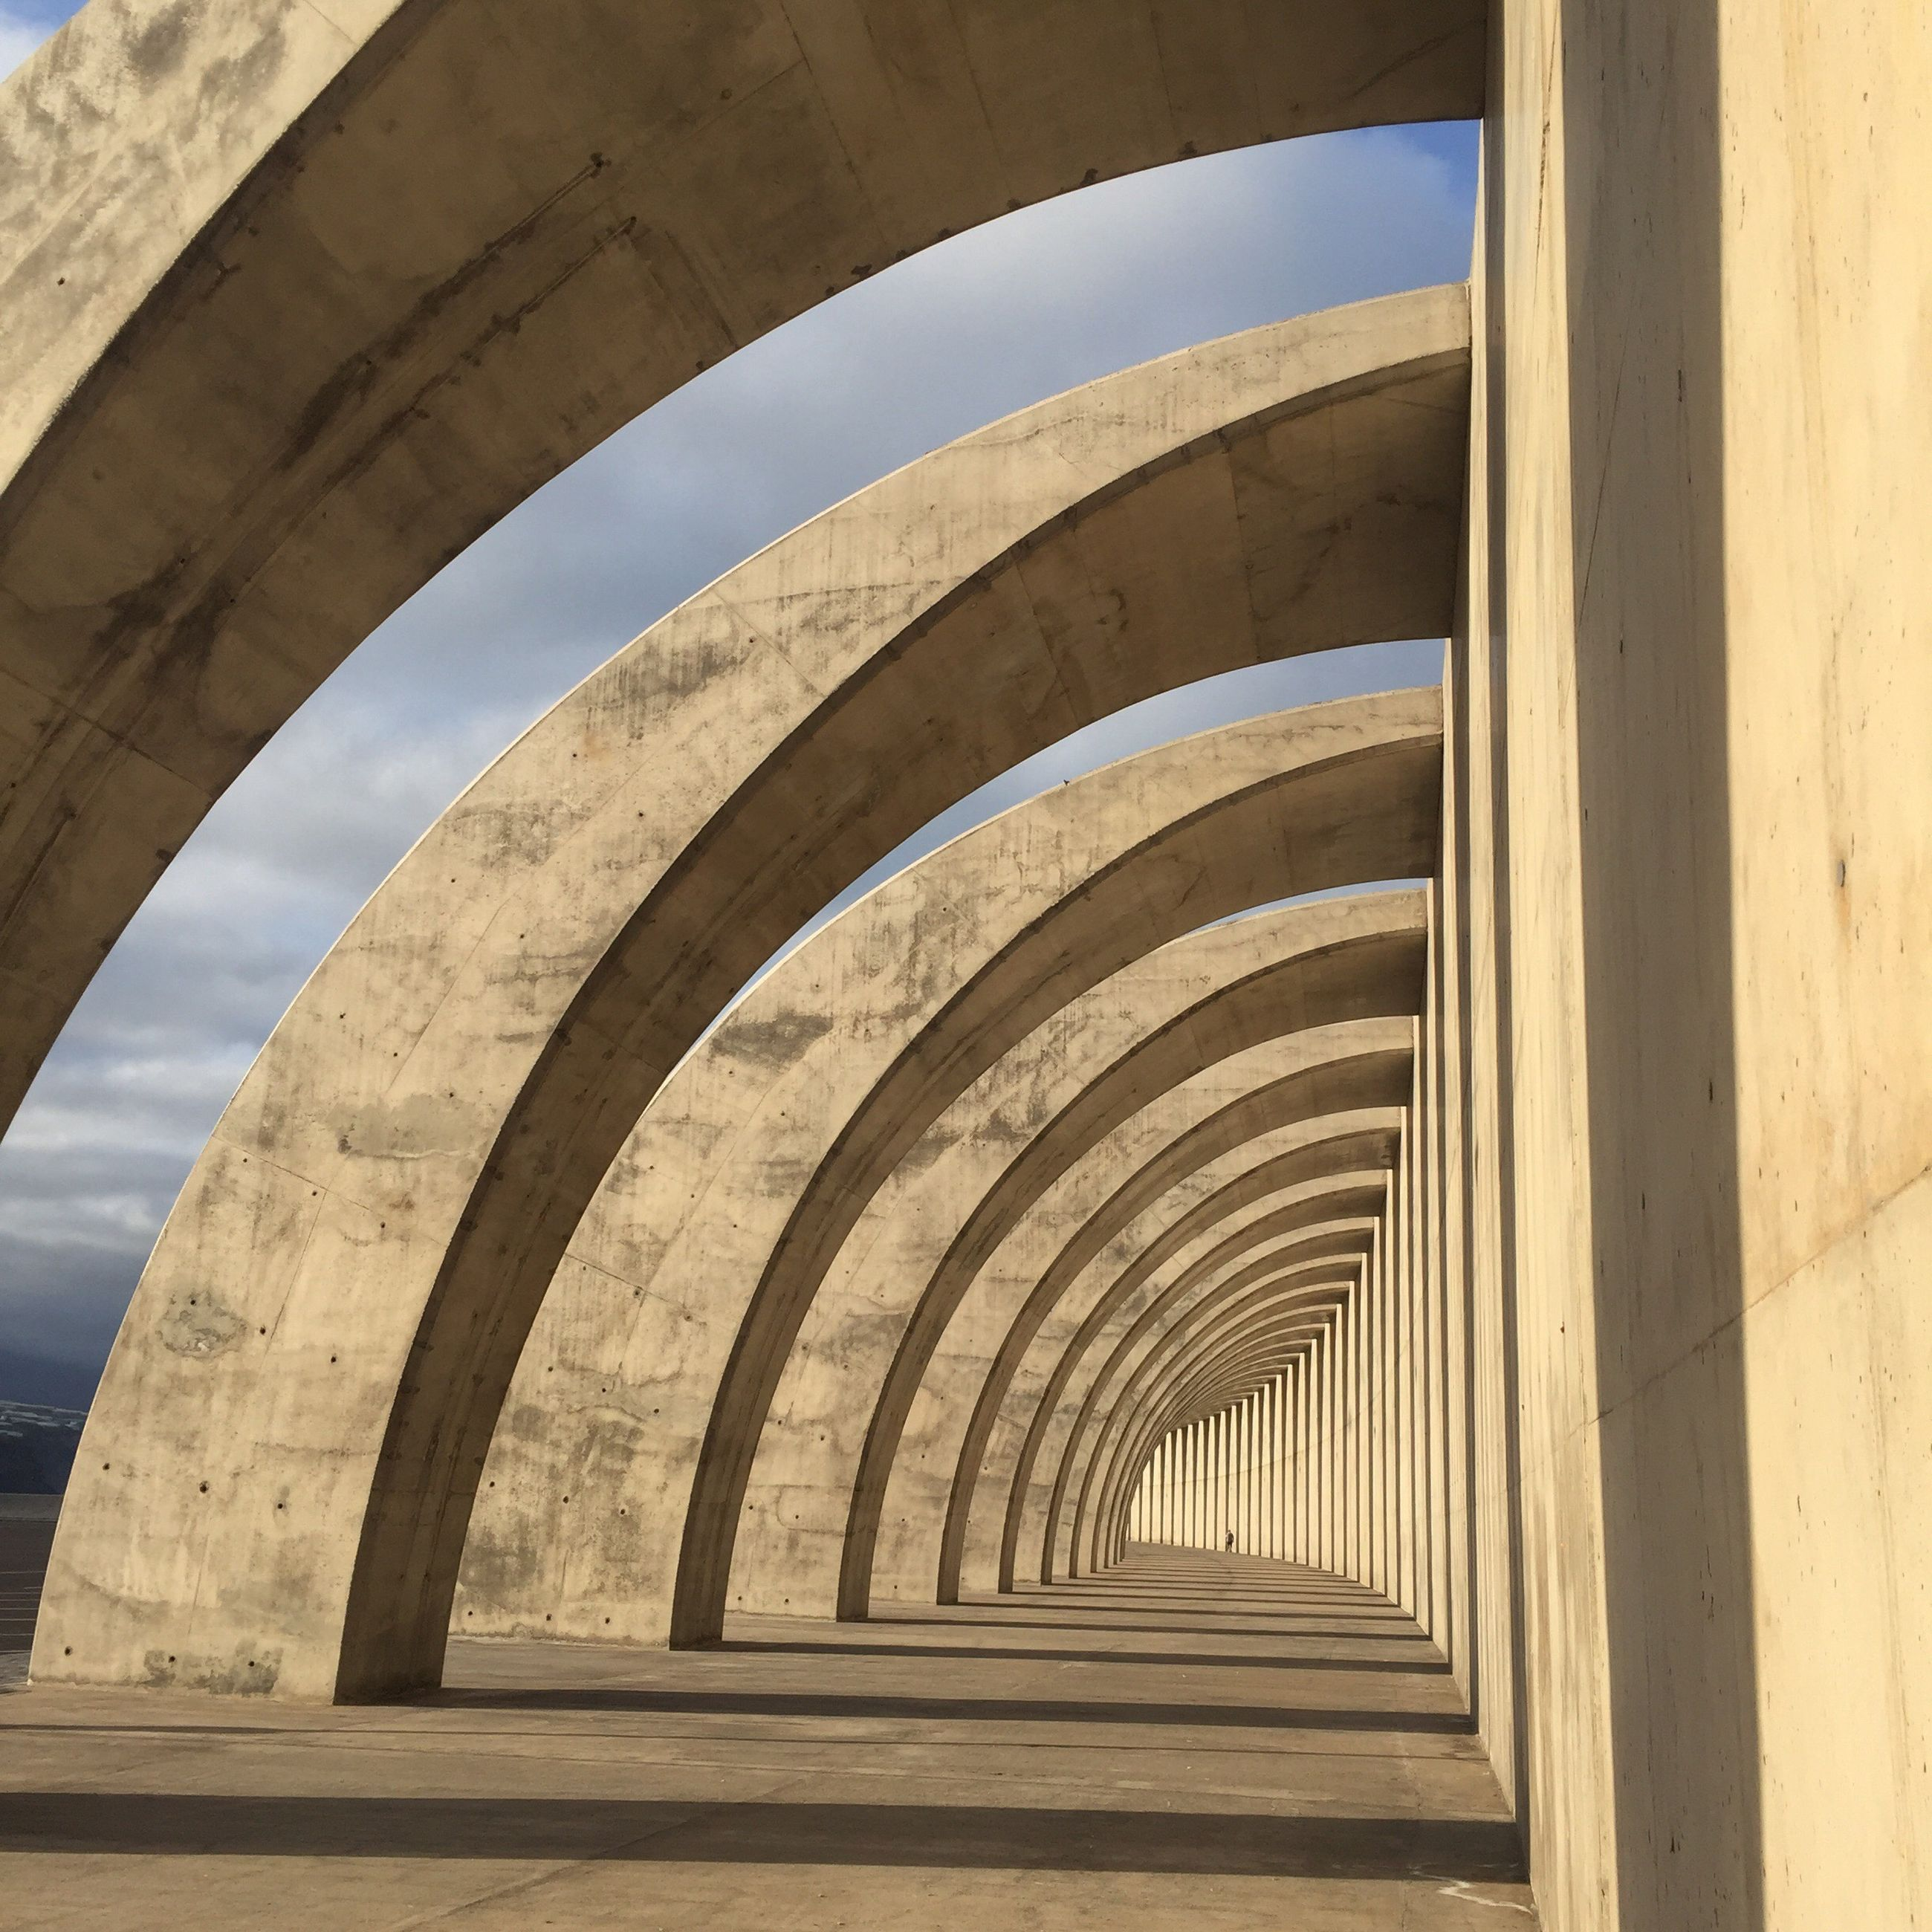 built structure, architecture, no people, outdoors, day, sky